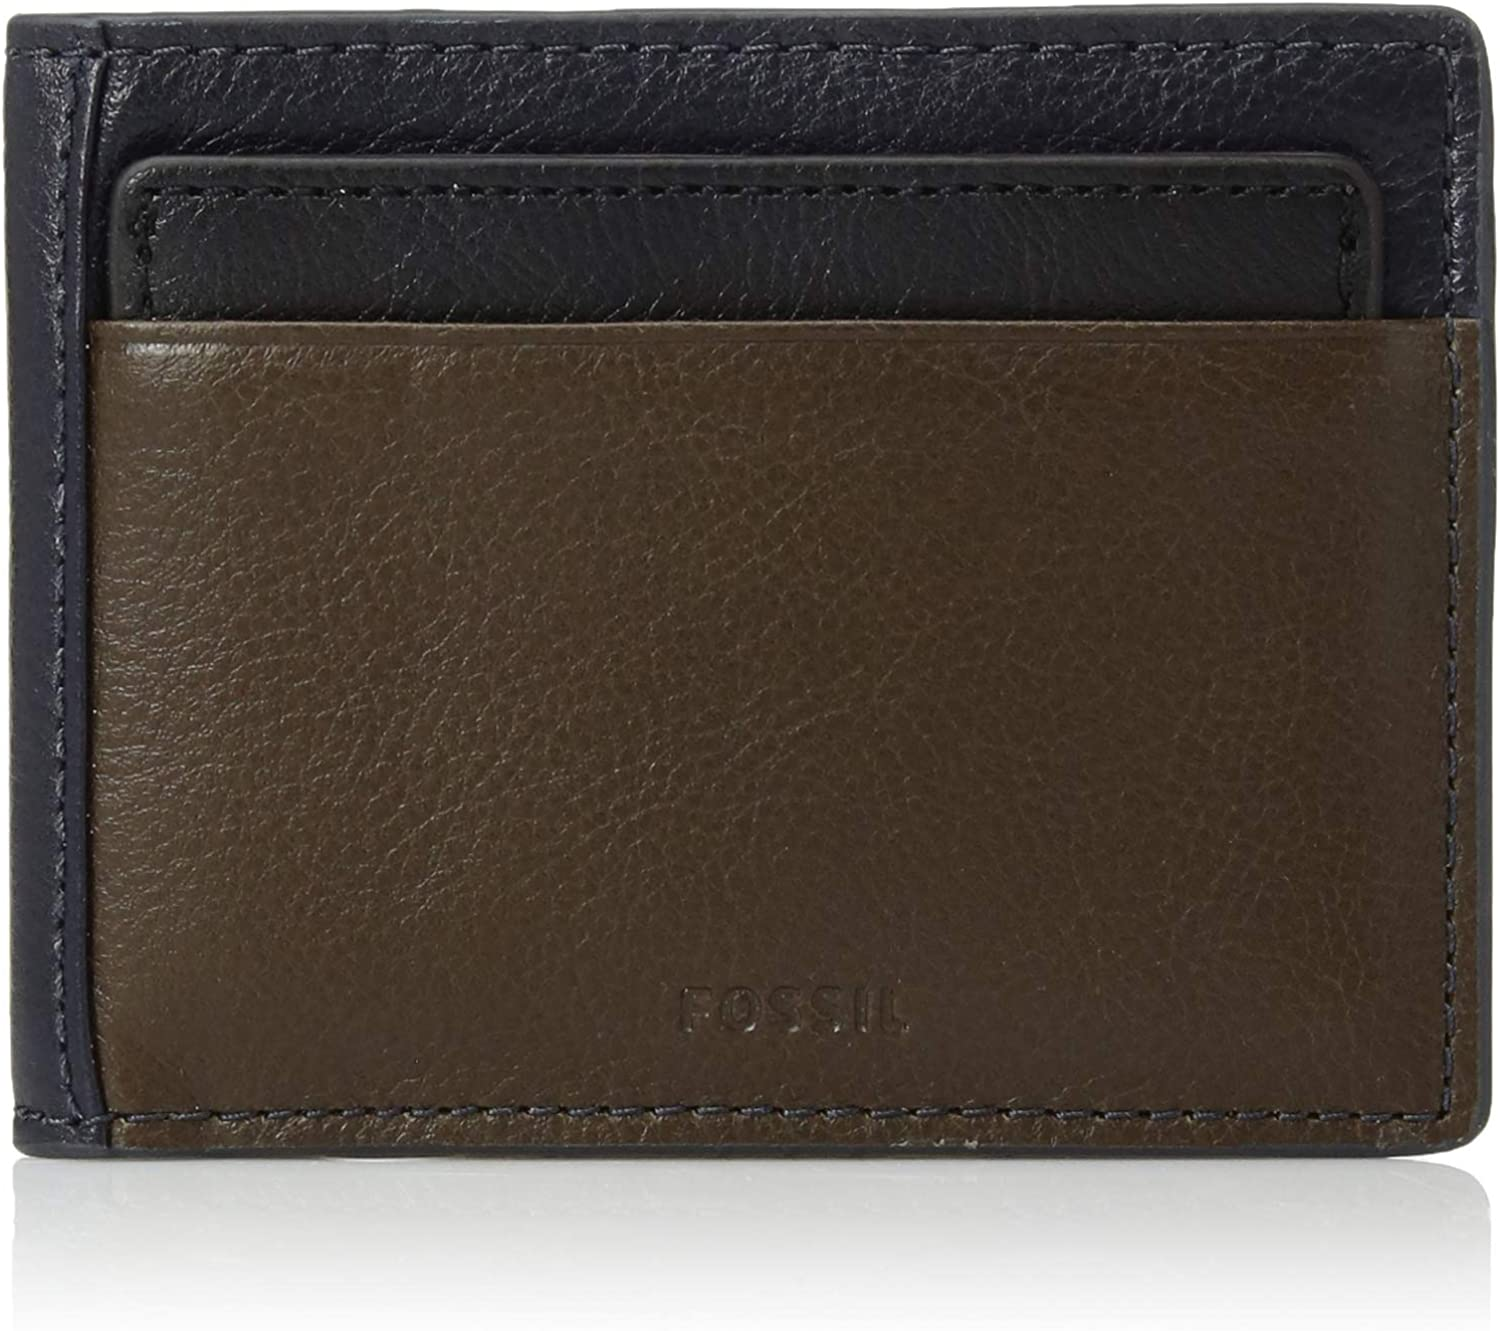 Fossil Men/'s Tate Rfid Leather Bifold Wallet